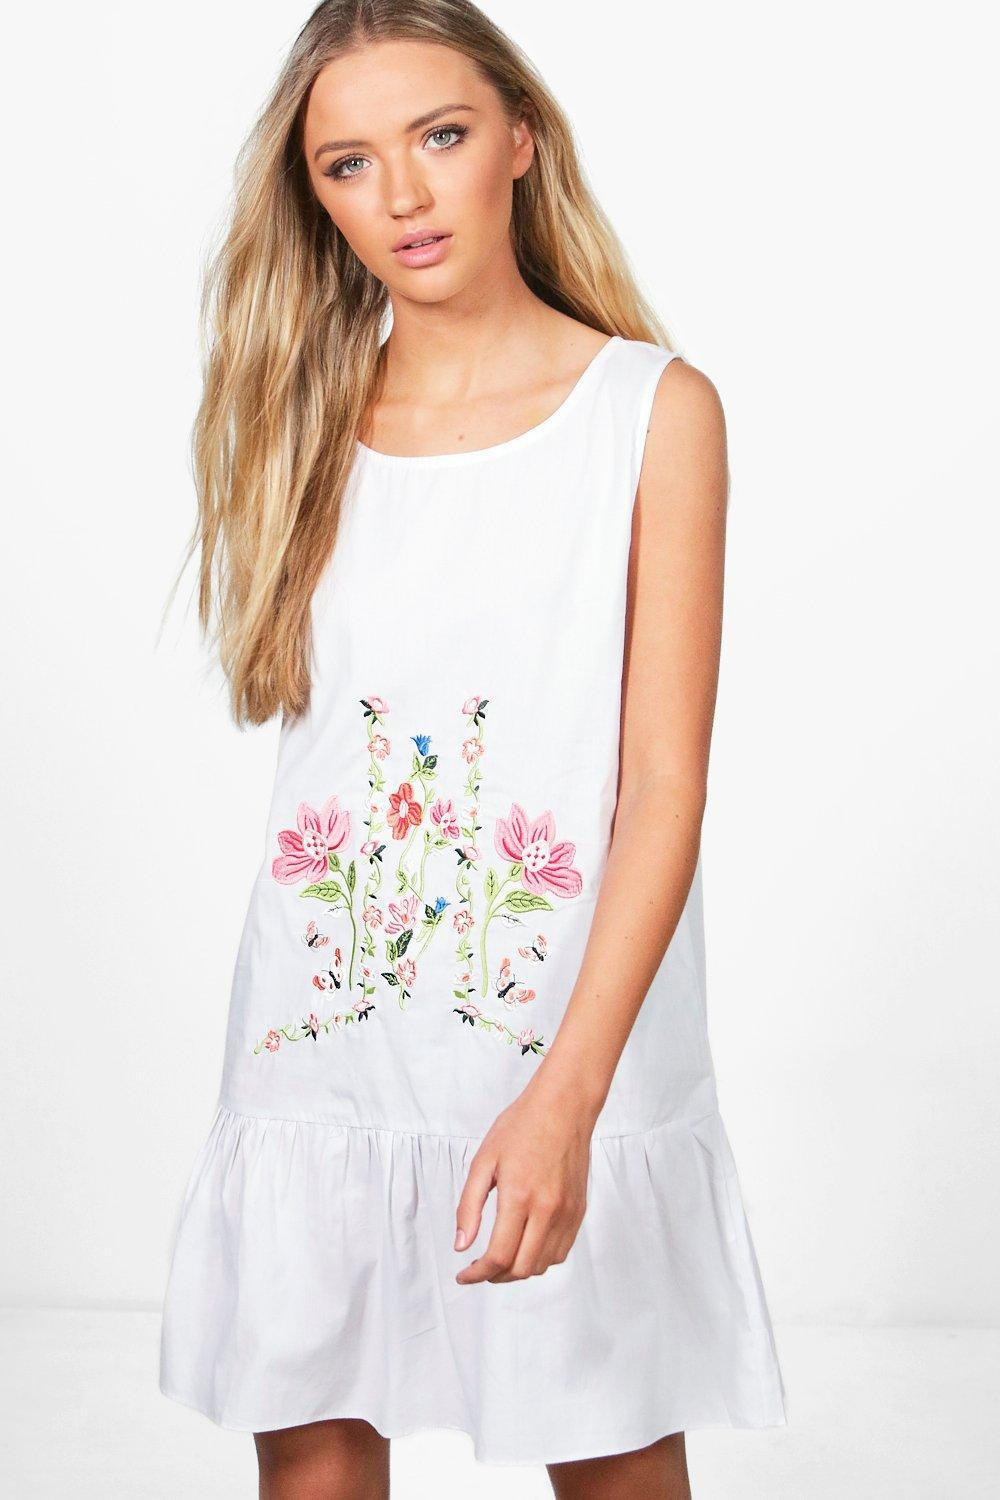 179c26b39e6e1 Boohoo Emilie Embroidered Smock Dress in White - Lyst